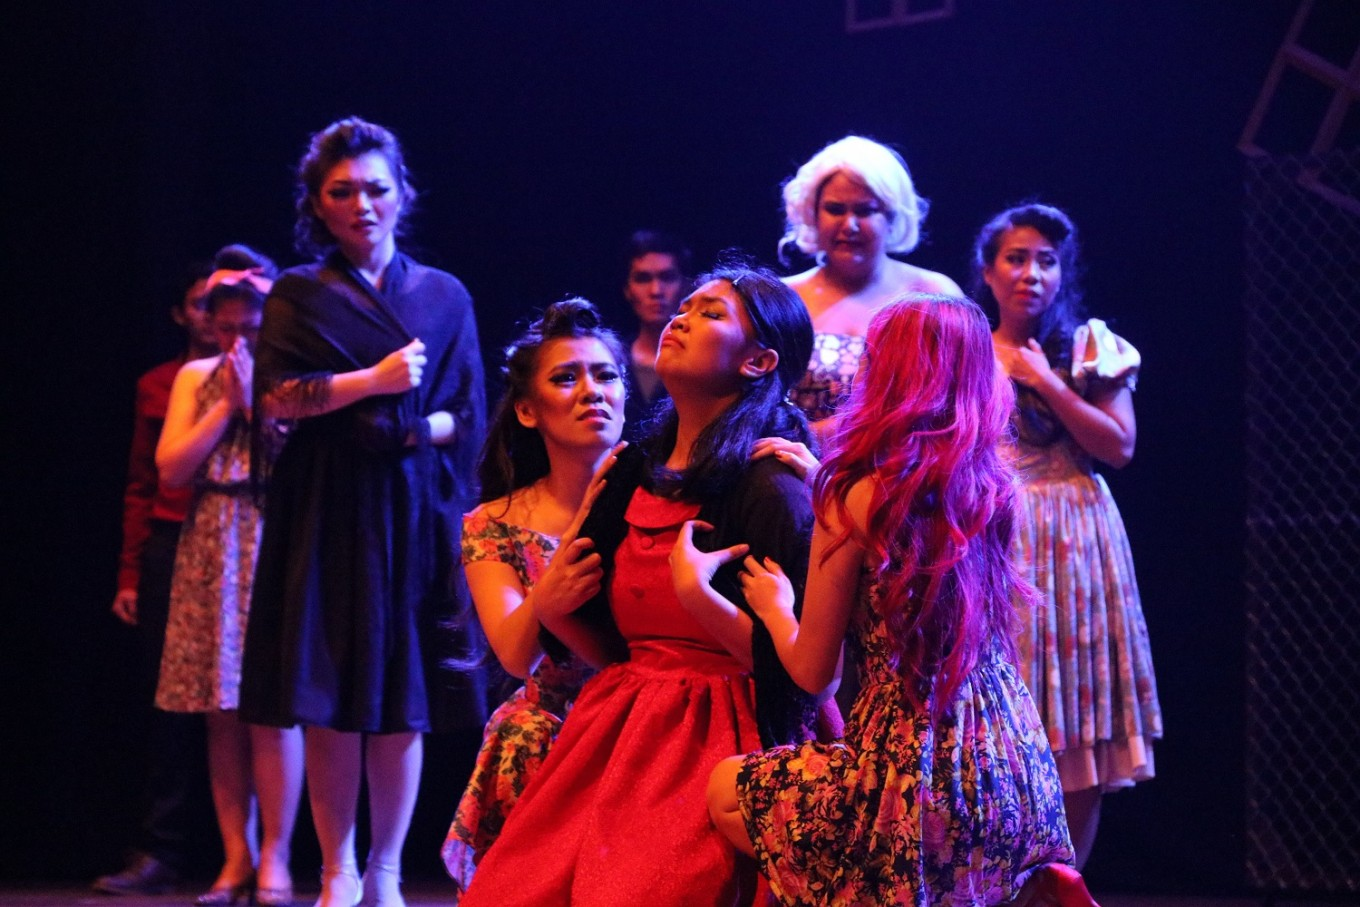 Jakarta Performing Arts Community takes a giant step with 'West Side Story'